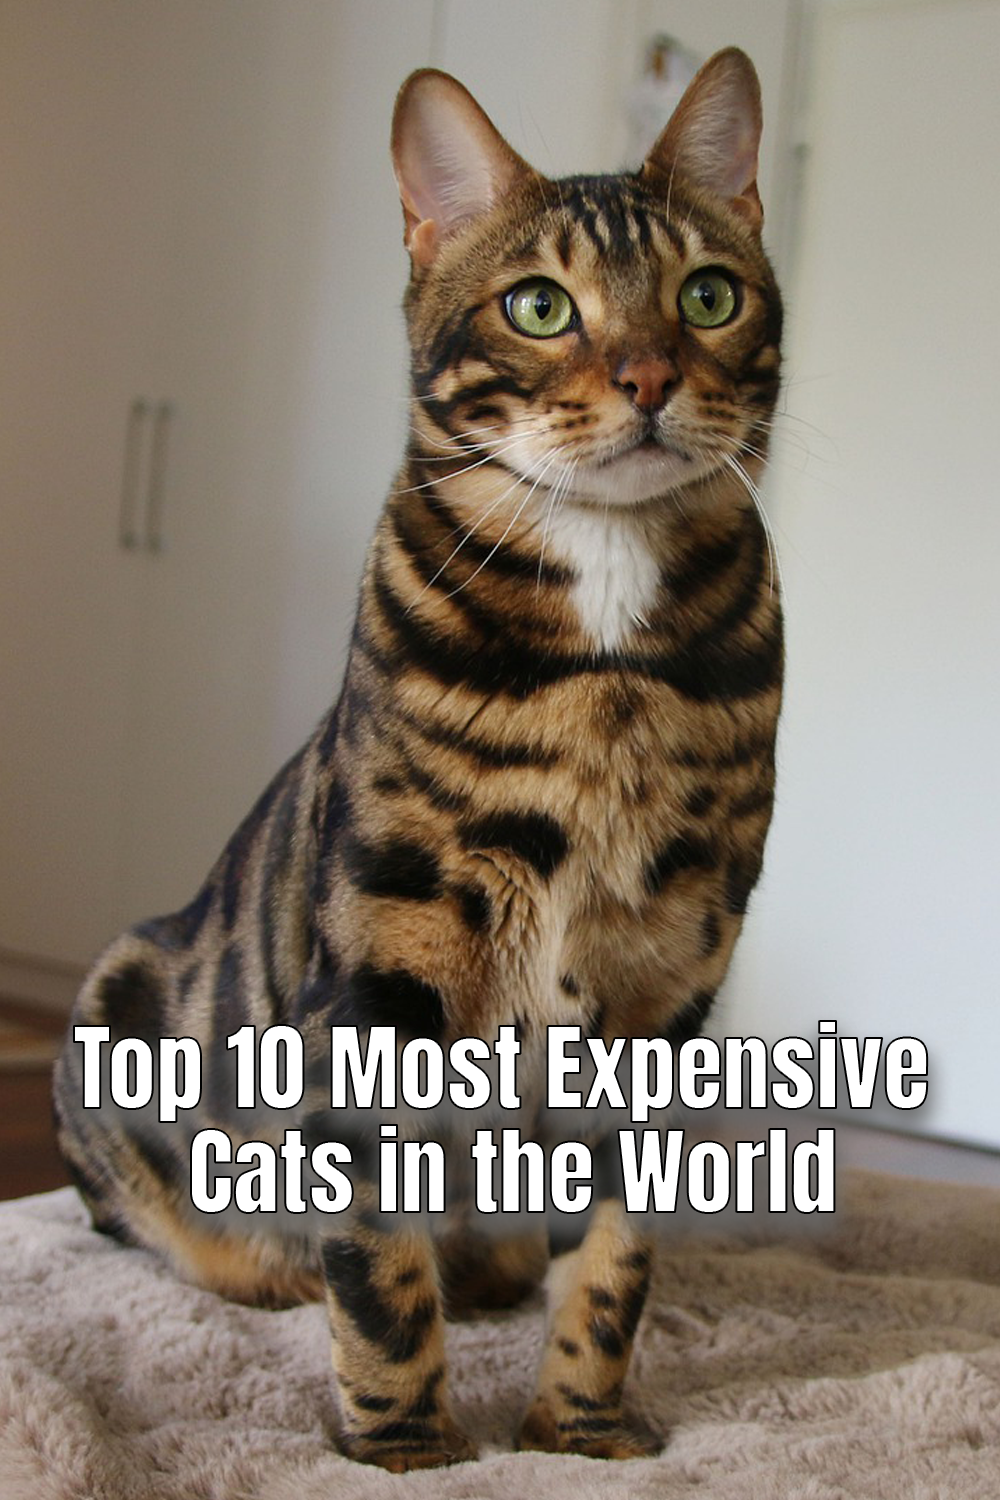 Top 10 Most Expensive Cat Breeds in the World in 2020